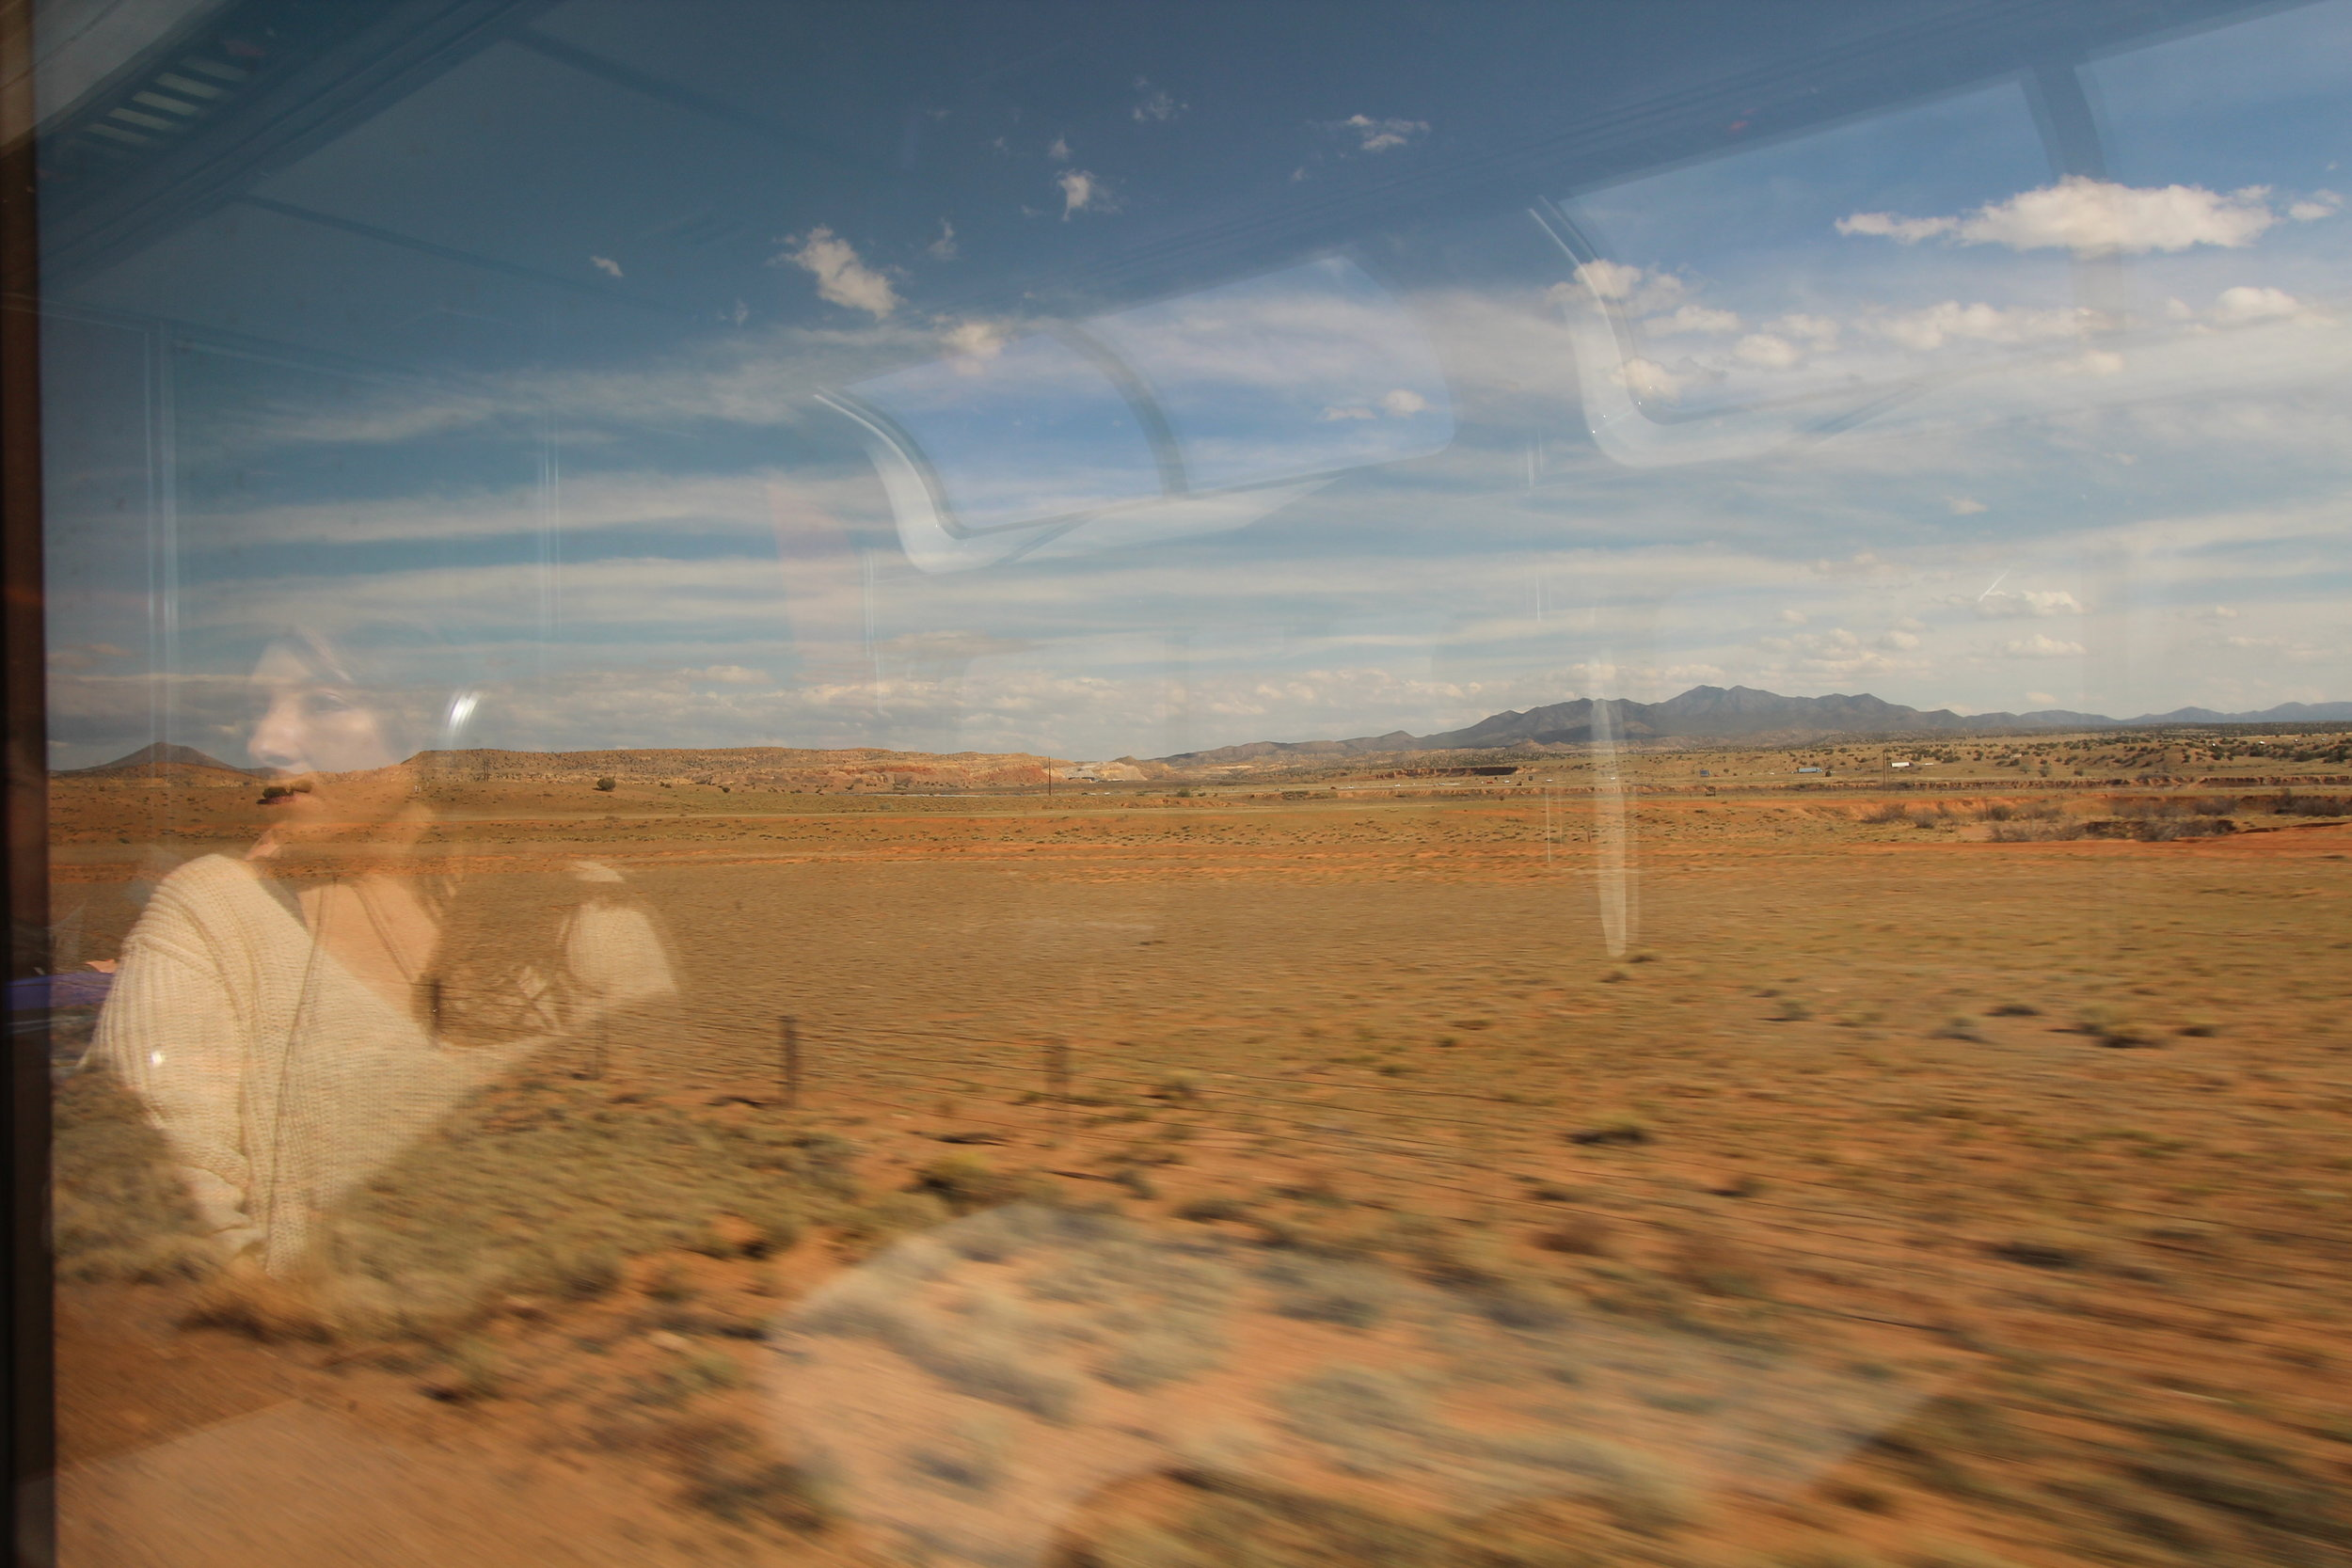 Views from Southwest Chief